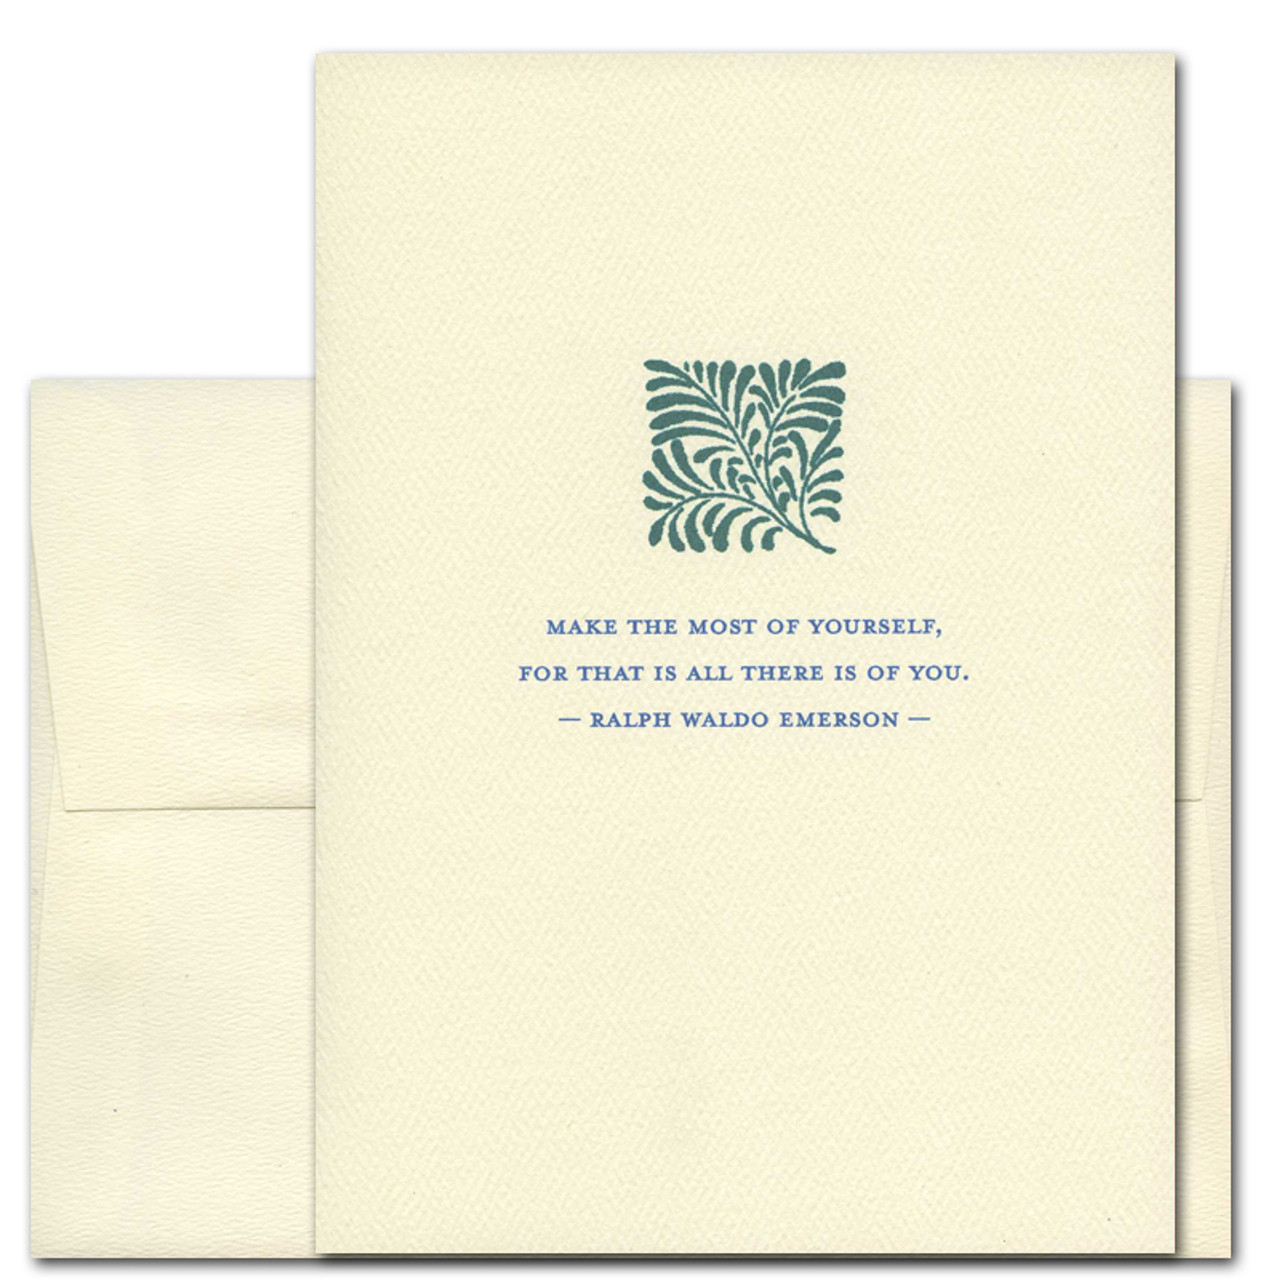 """Quotation Card """"Make the Most: Emerson"""" Cover shows a vintage illustration of a branch with a quote by Ralph Waldo Emerson that reads: """"Make the most of yourself, for that is all there is of you."""""""